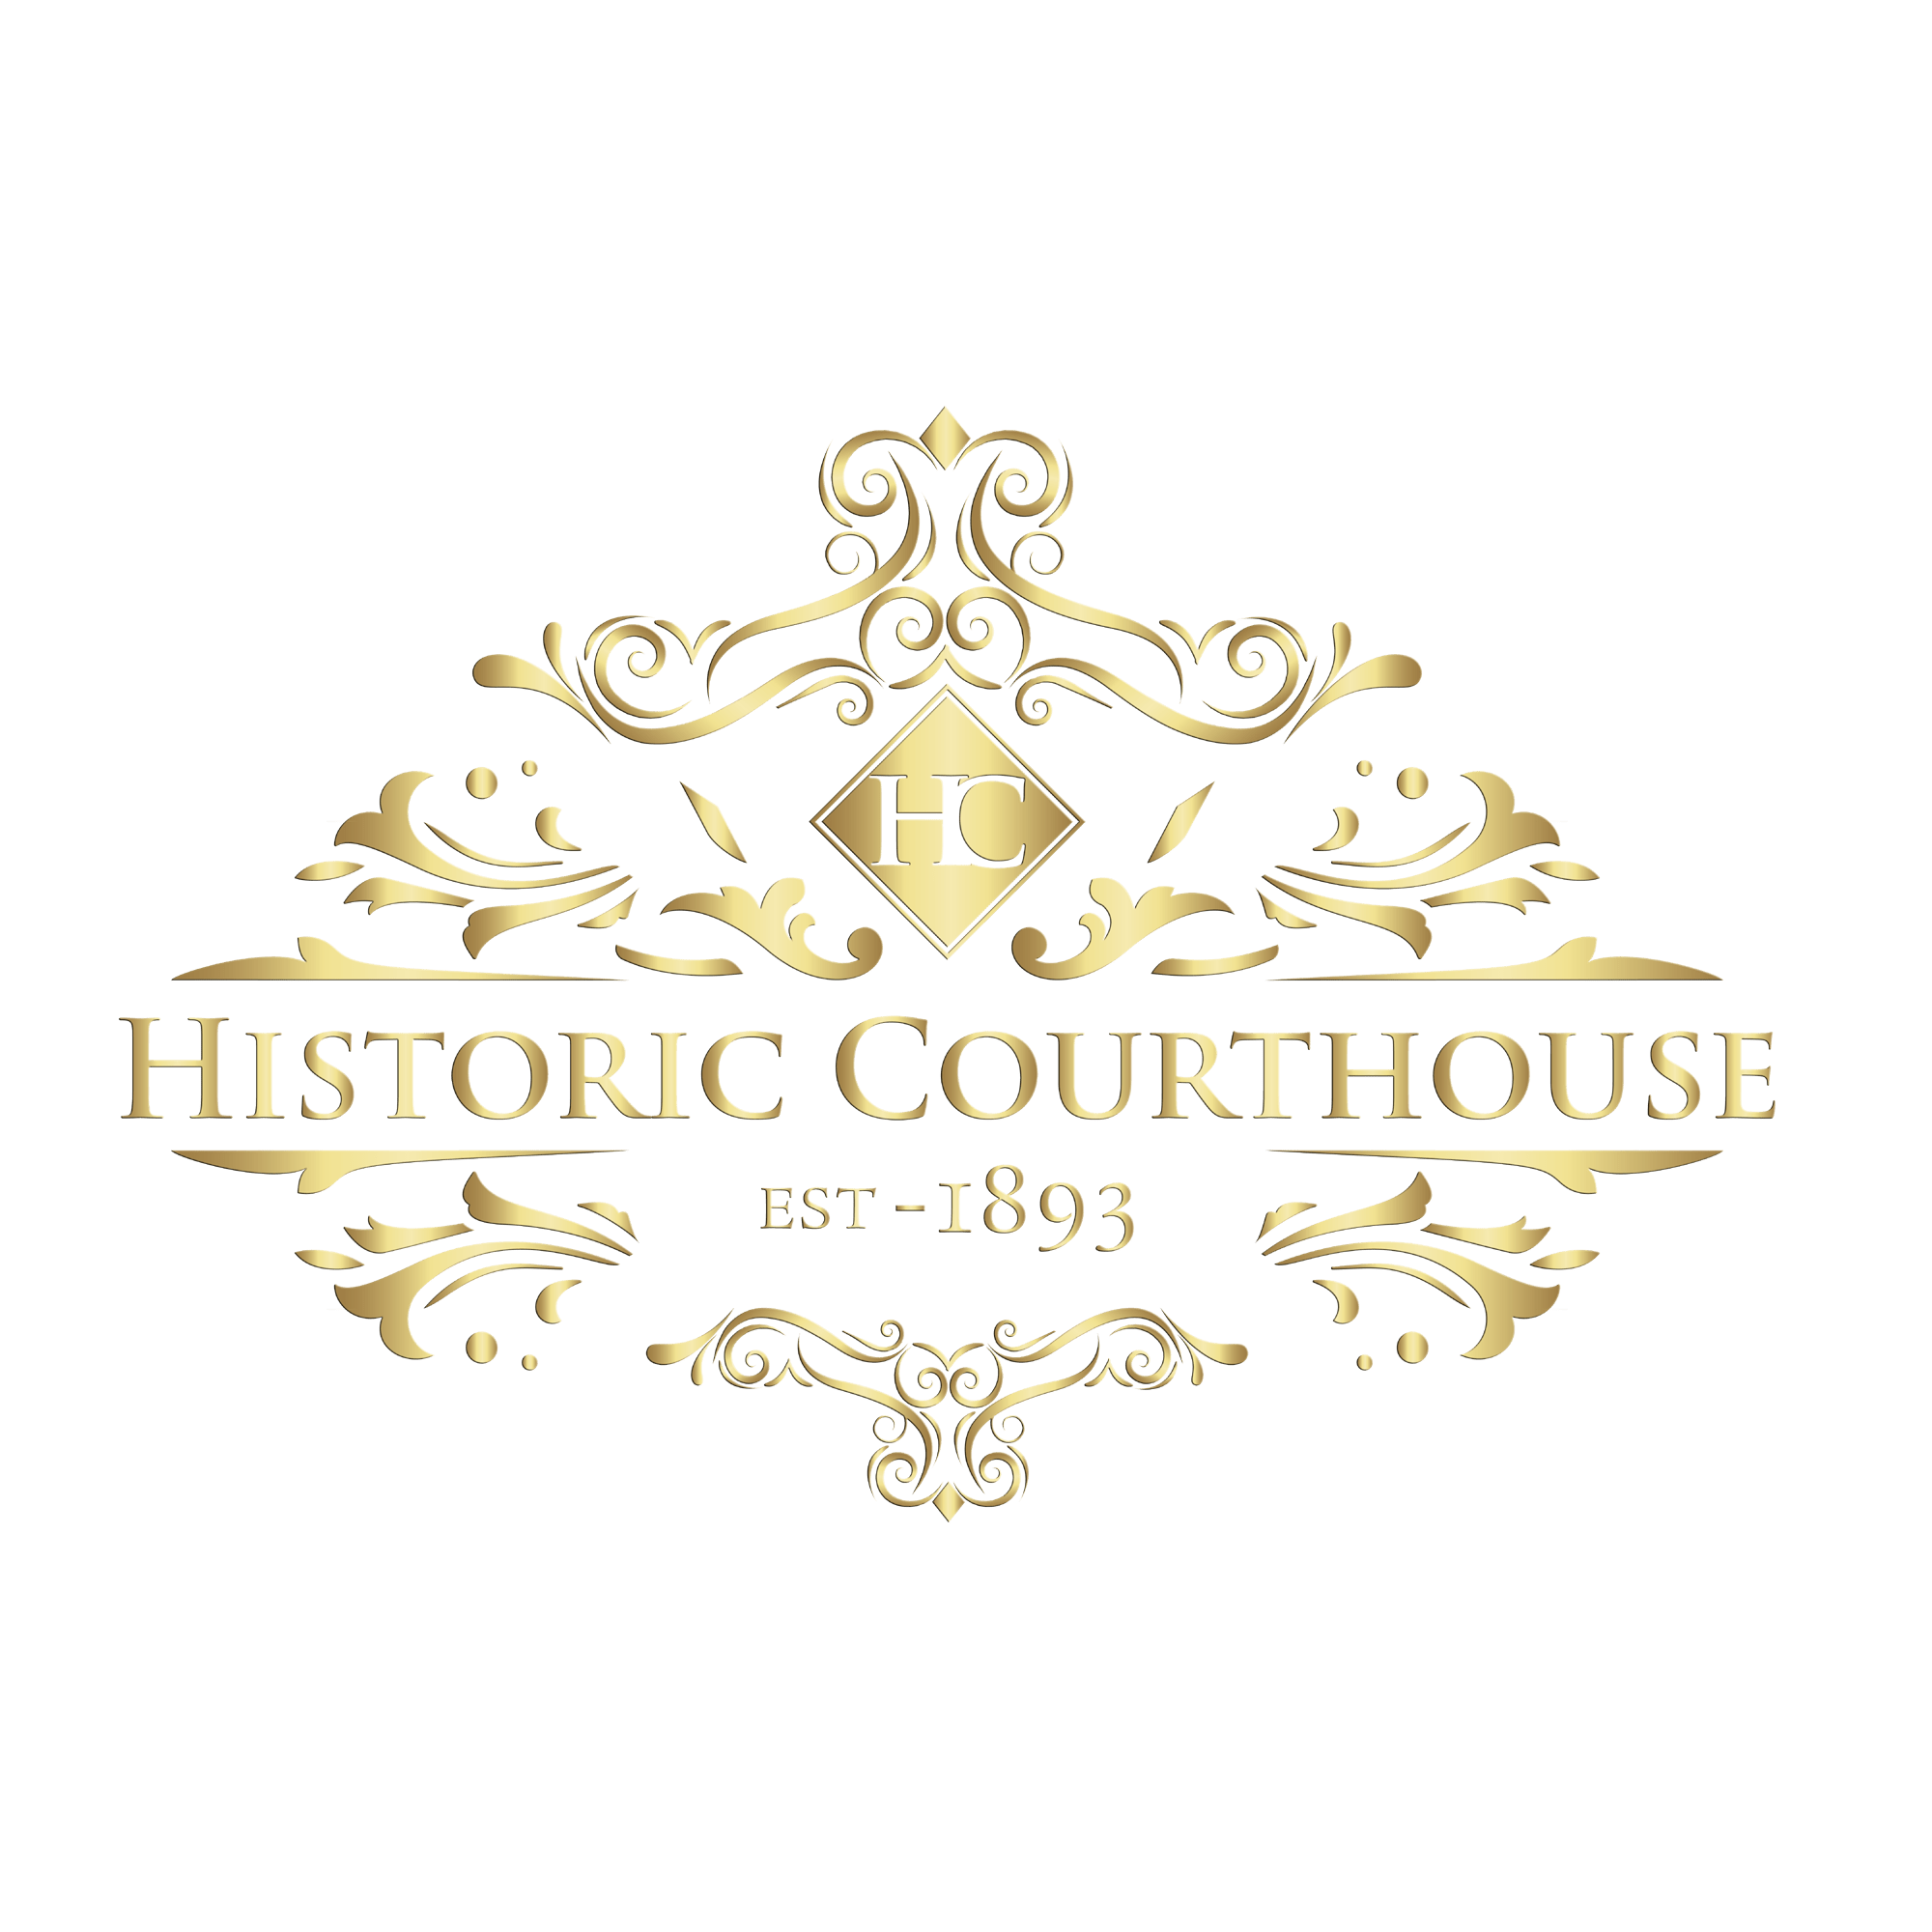 Historic Courthouse 1893